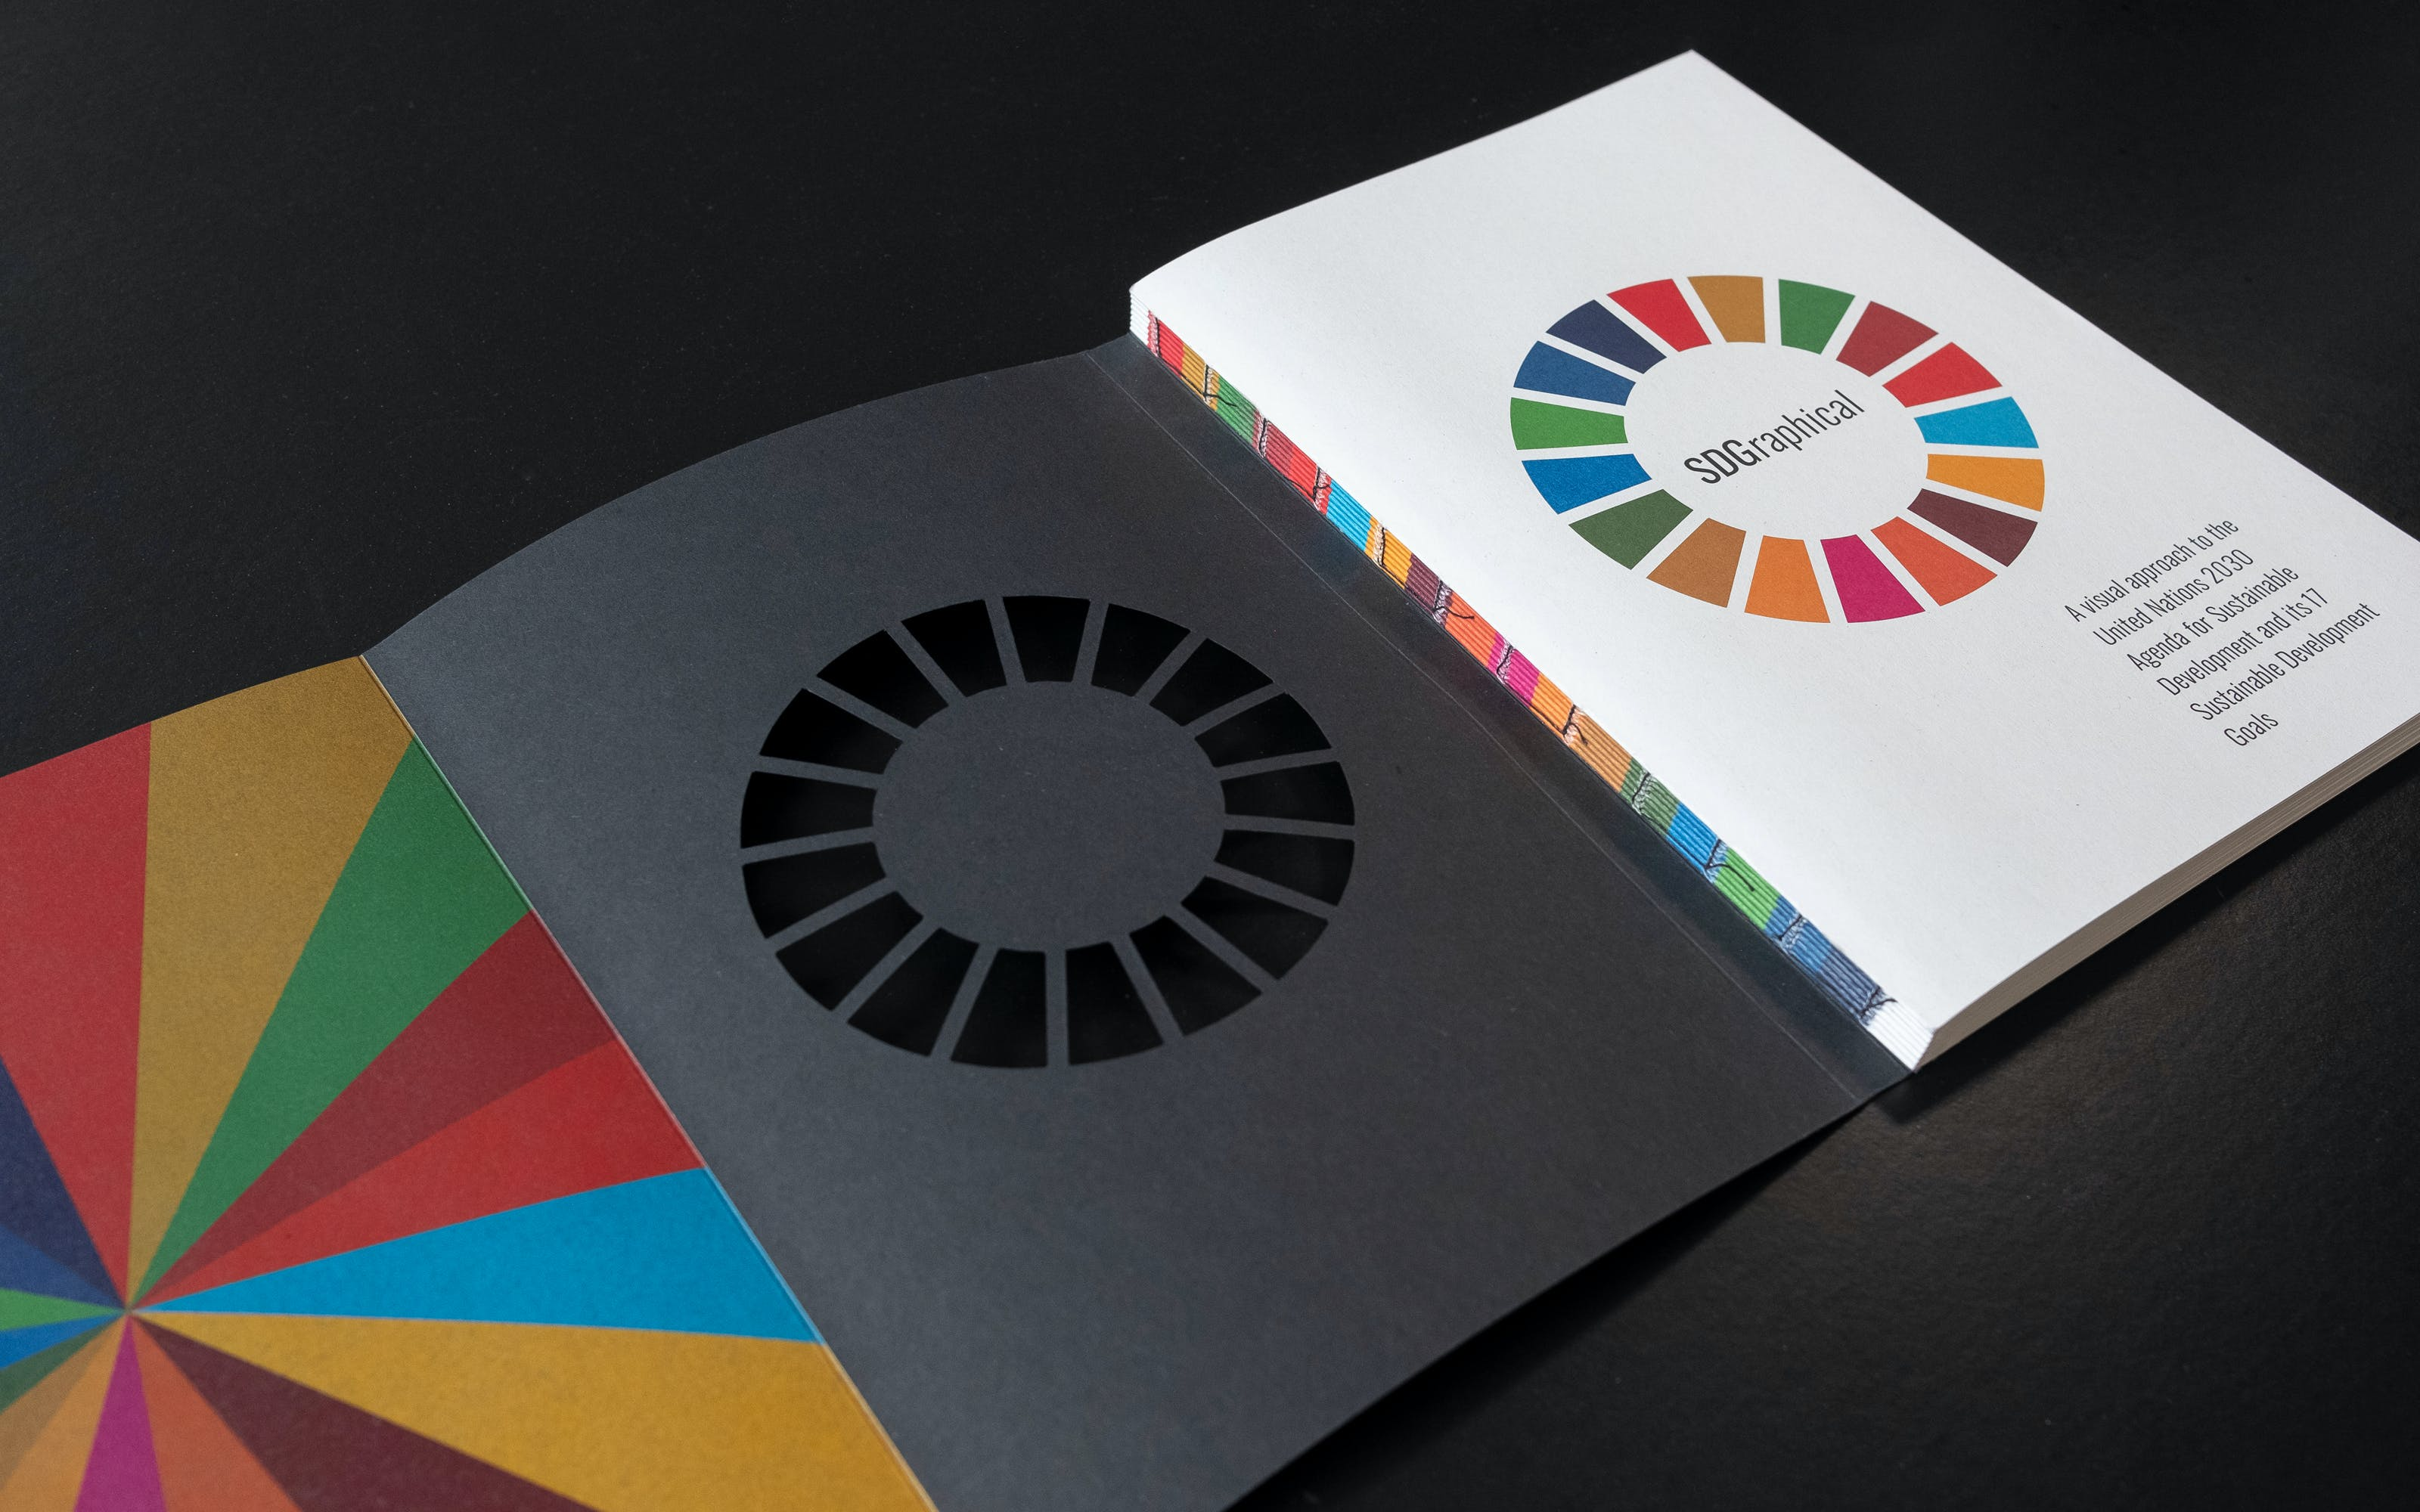 The 2030 Agenda is one of the largest projects of the United Nations, as it seeks to significantly improve and measure a wide range of global issues from the environment to inequality. SDGraphics makes an important contribution to the question of how to communicate the progress of this agenda. With its appealing aesthetics and high-quality, sustainable production, it encourages engagement with the data it presents and appeals to statisticians and the general public.